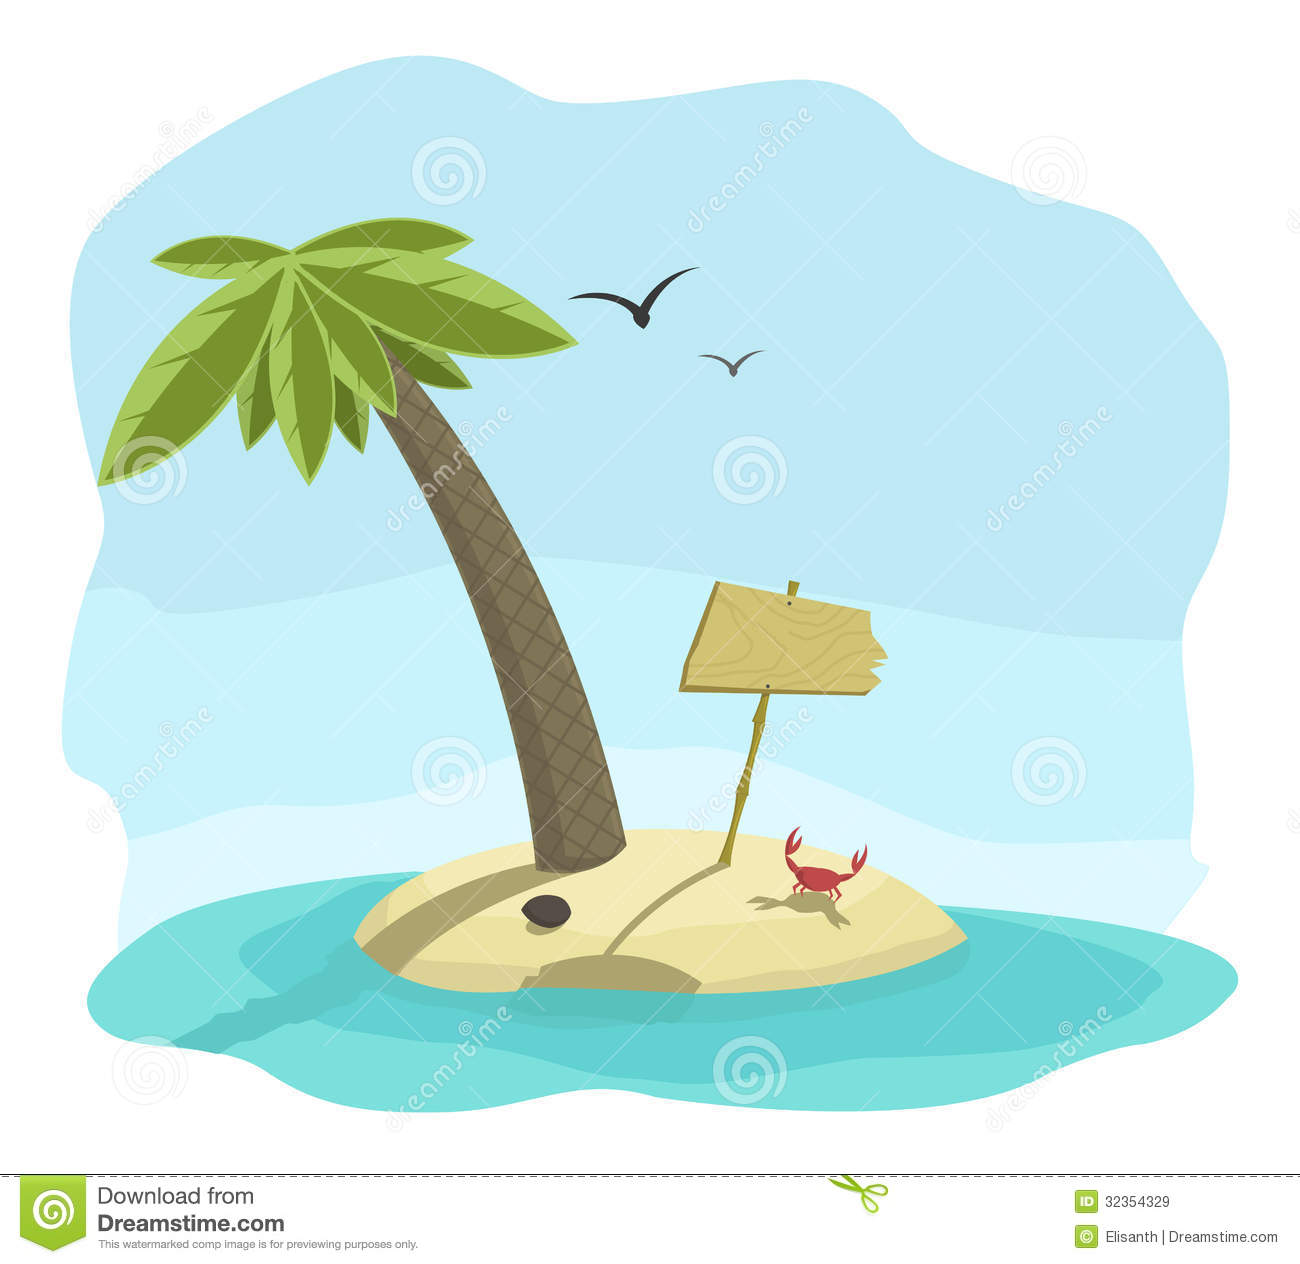 Vector Illustration Of Tropical Island With Signbo Royalty Free Stock ...